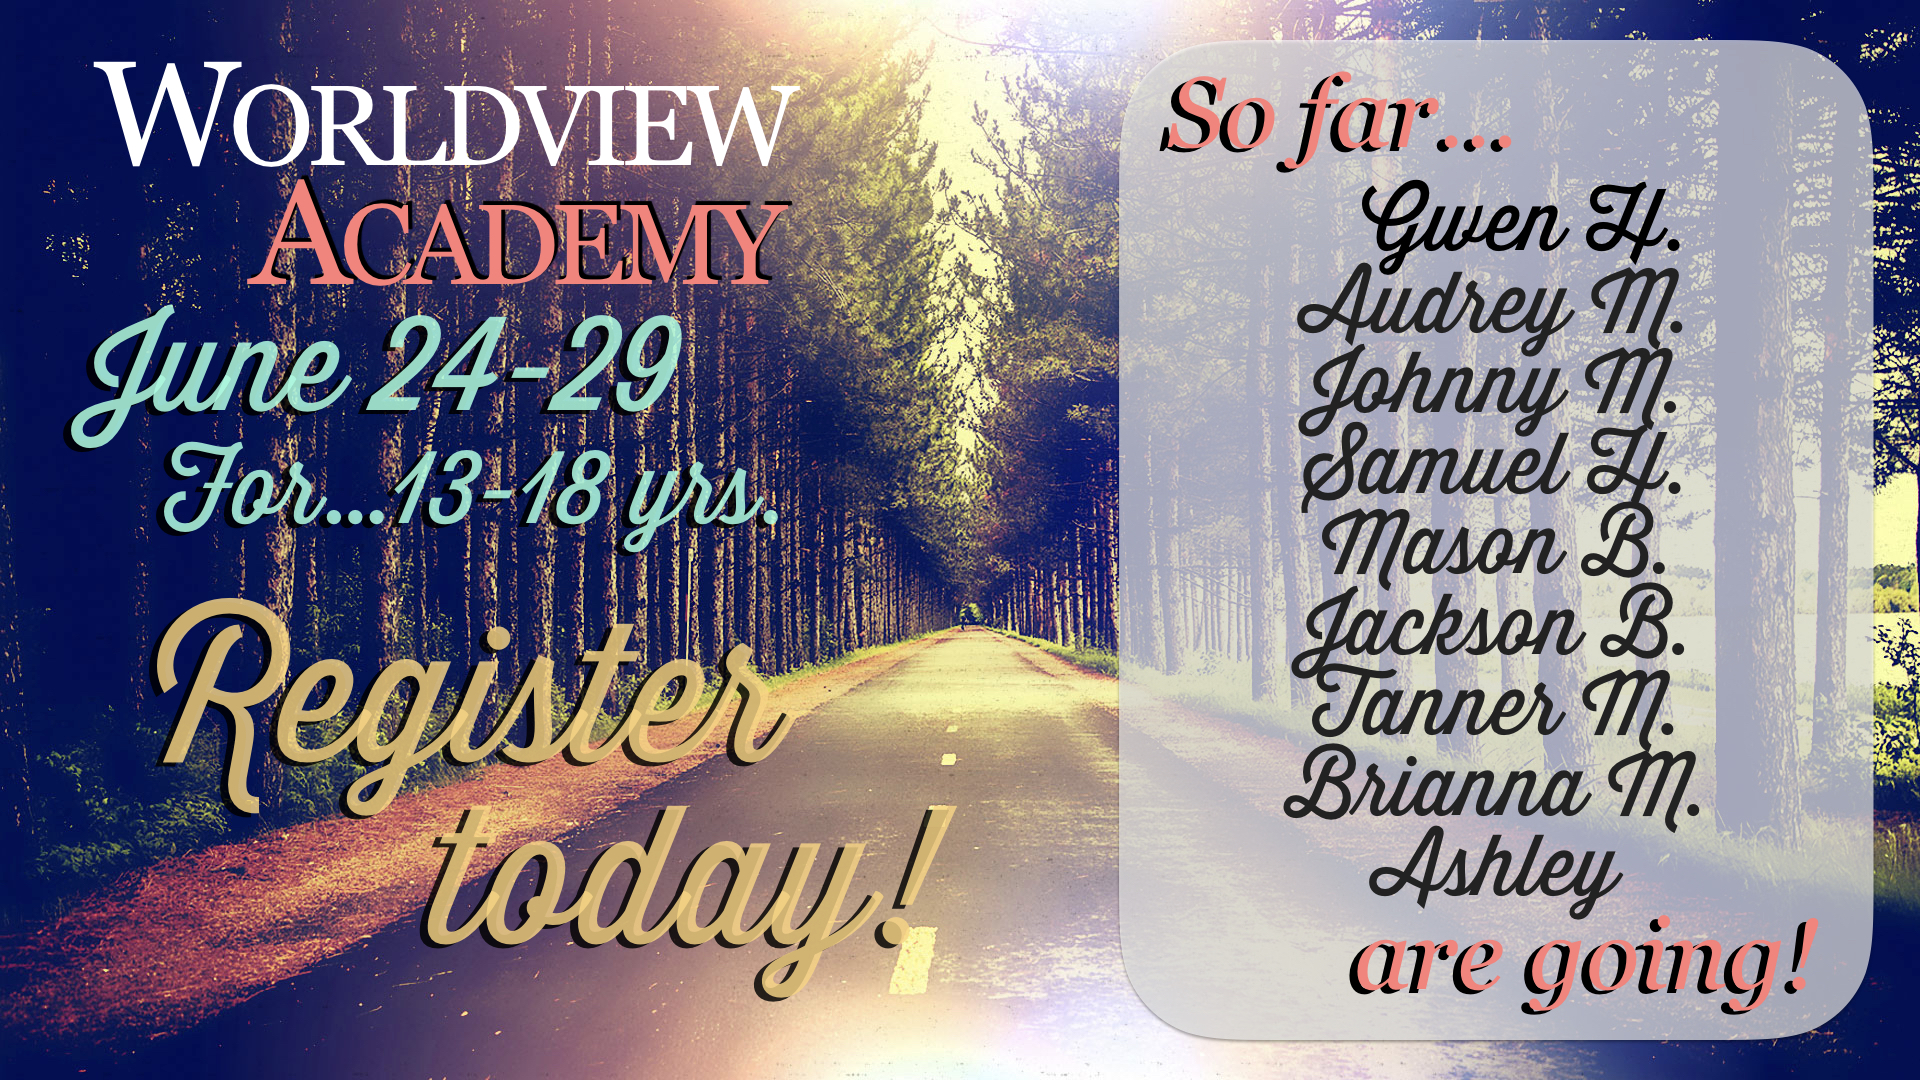 This camp is one of the best! See the webpage today!